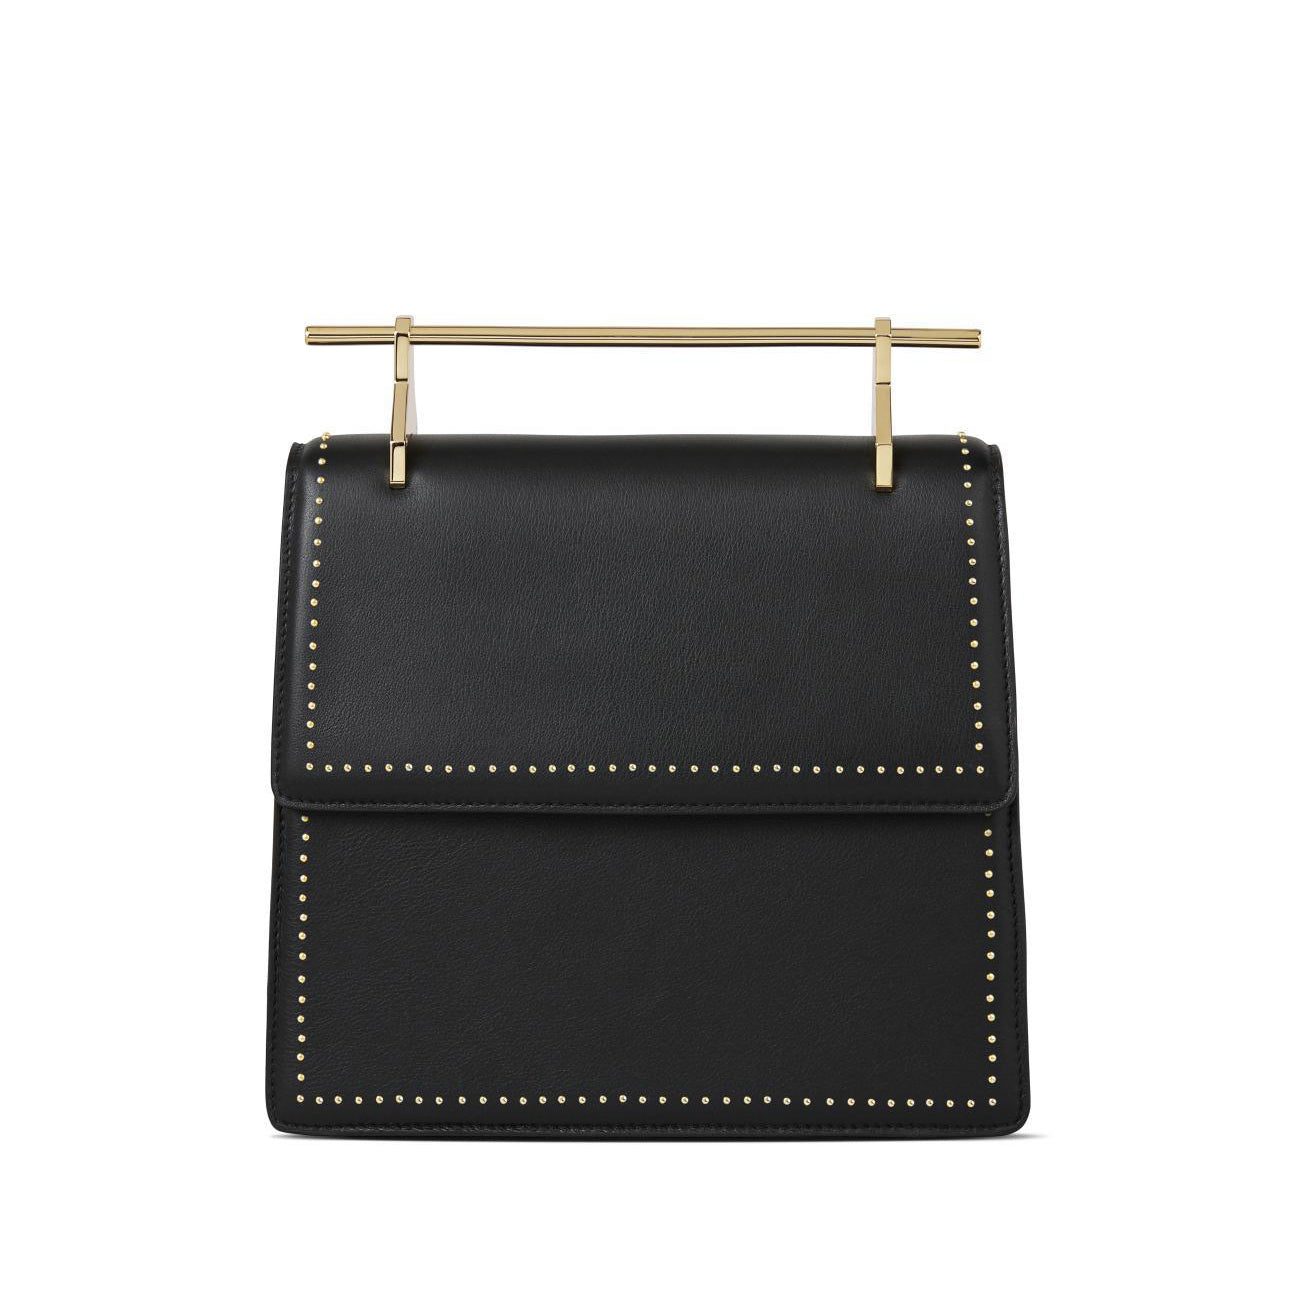 La Collectionneuse Black With Gold Studs